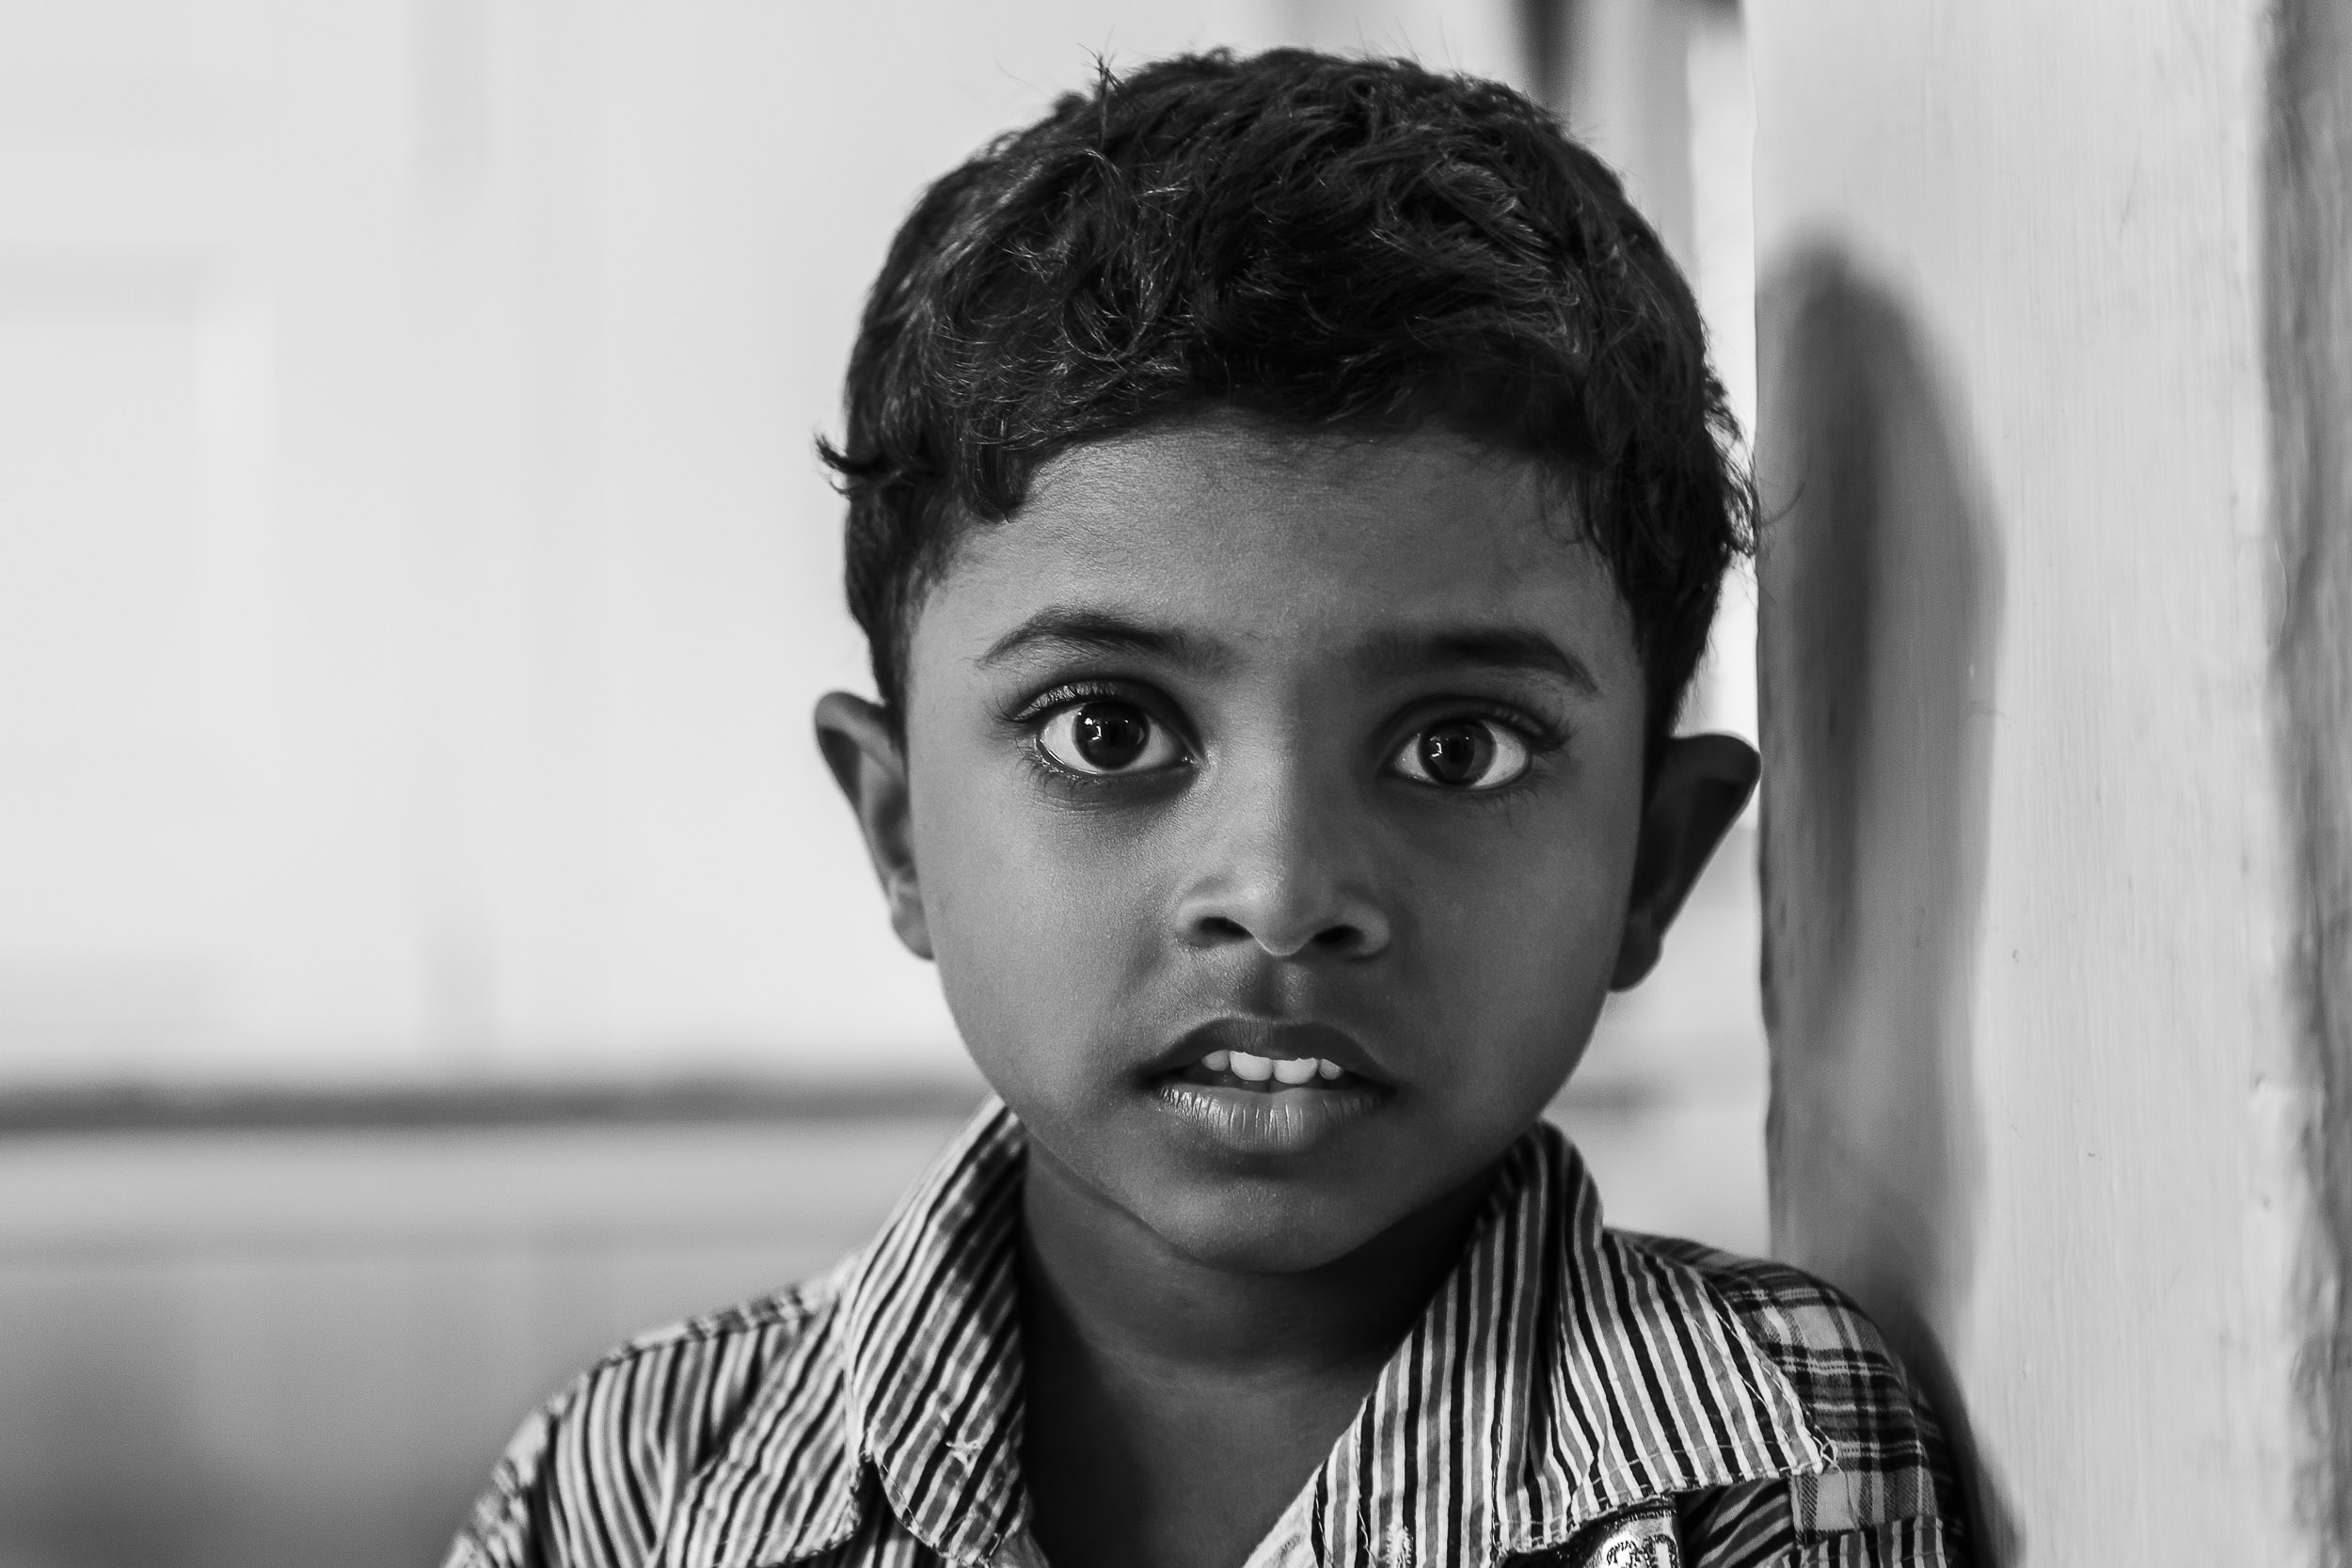 The    face of innocence   . A portrait of a    young boy    on    St. Thomas Mount    in    Chennai, India   .